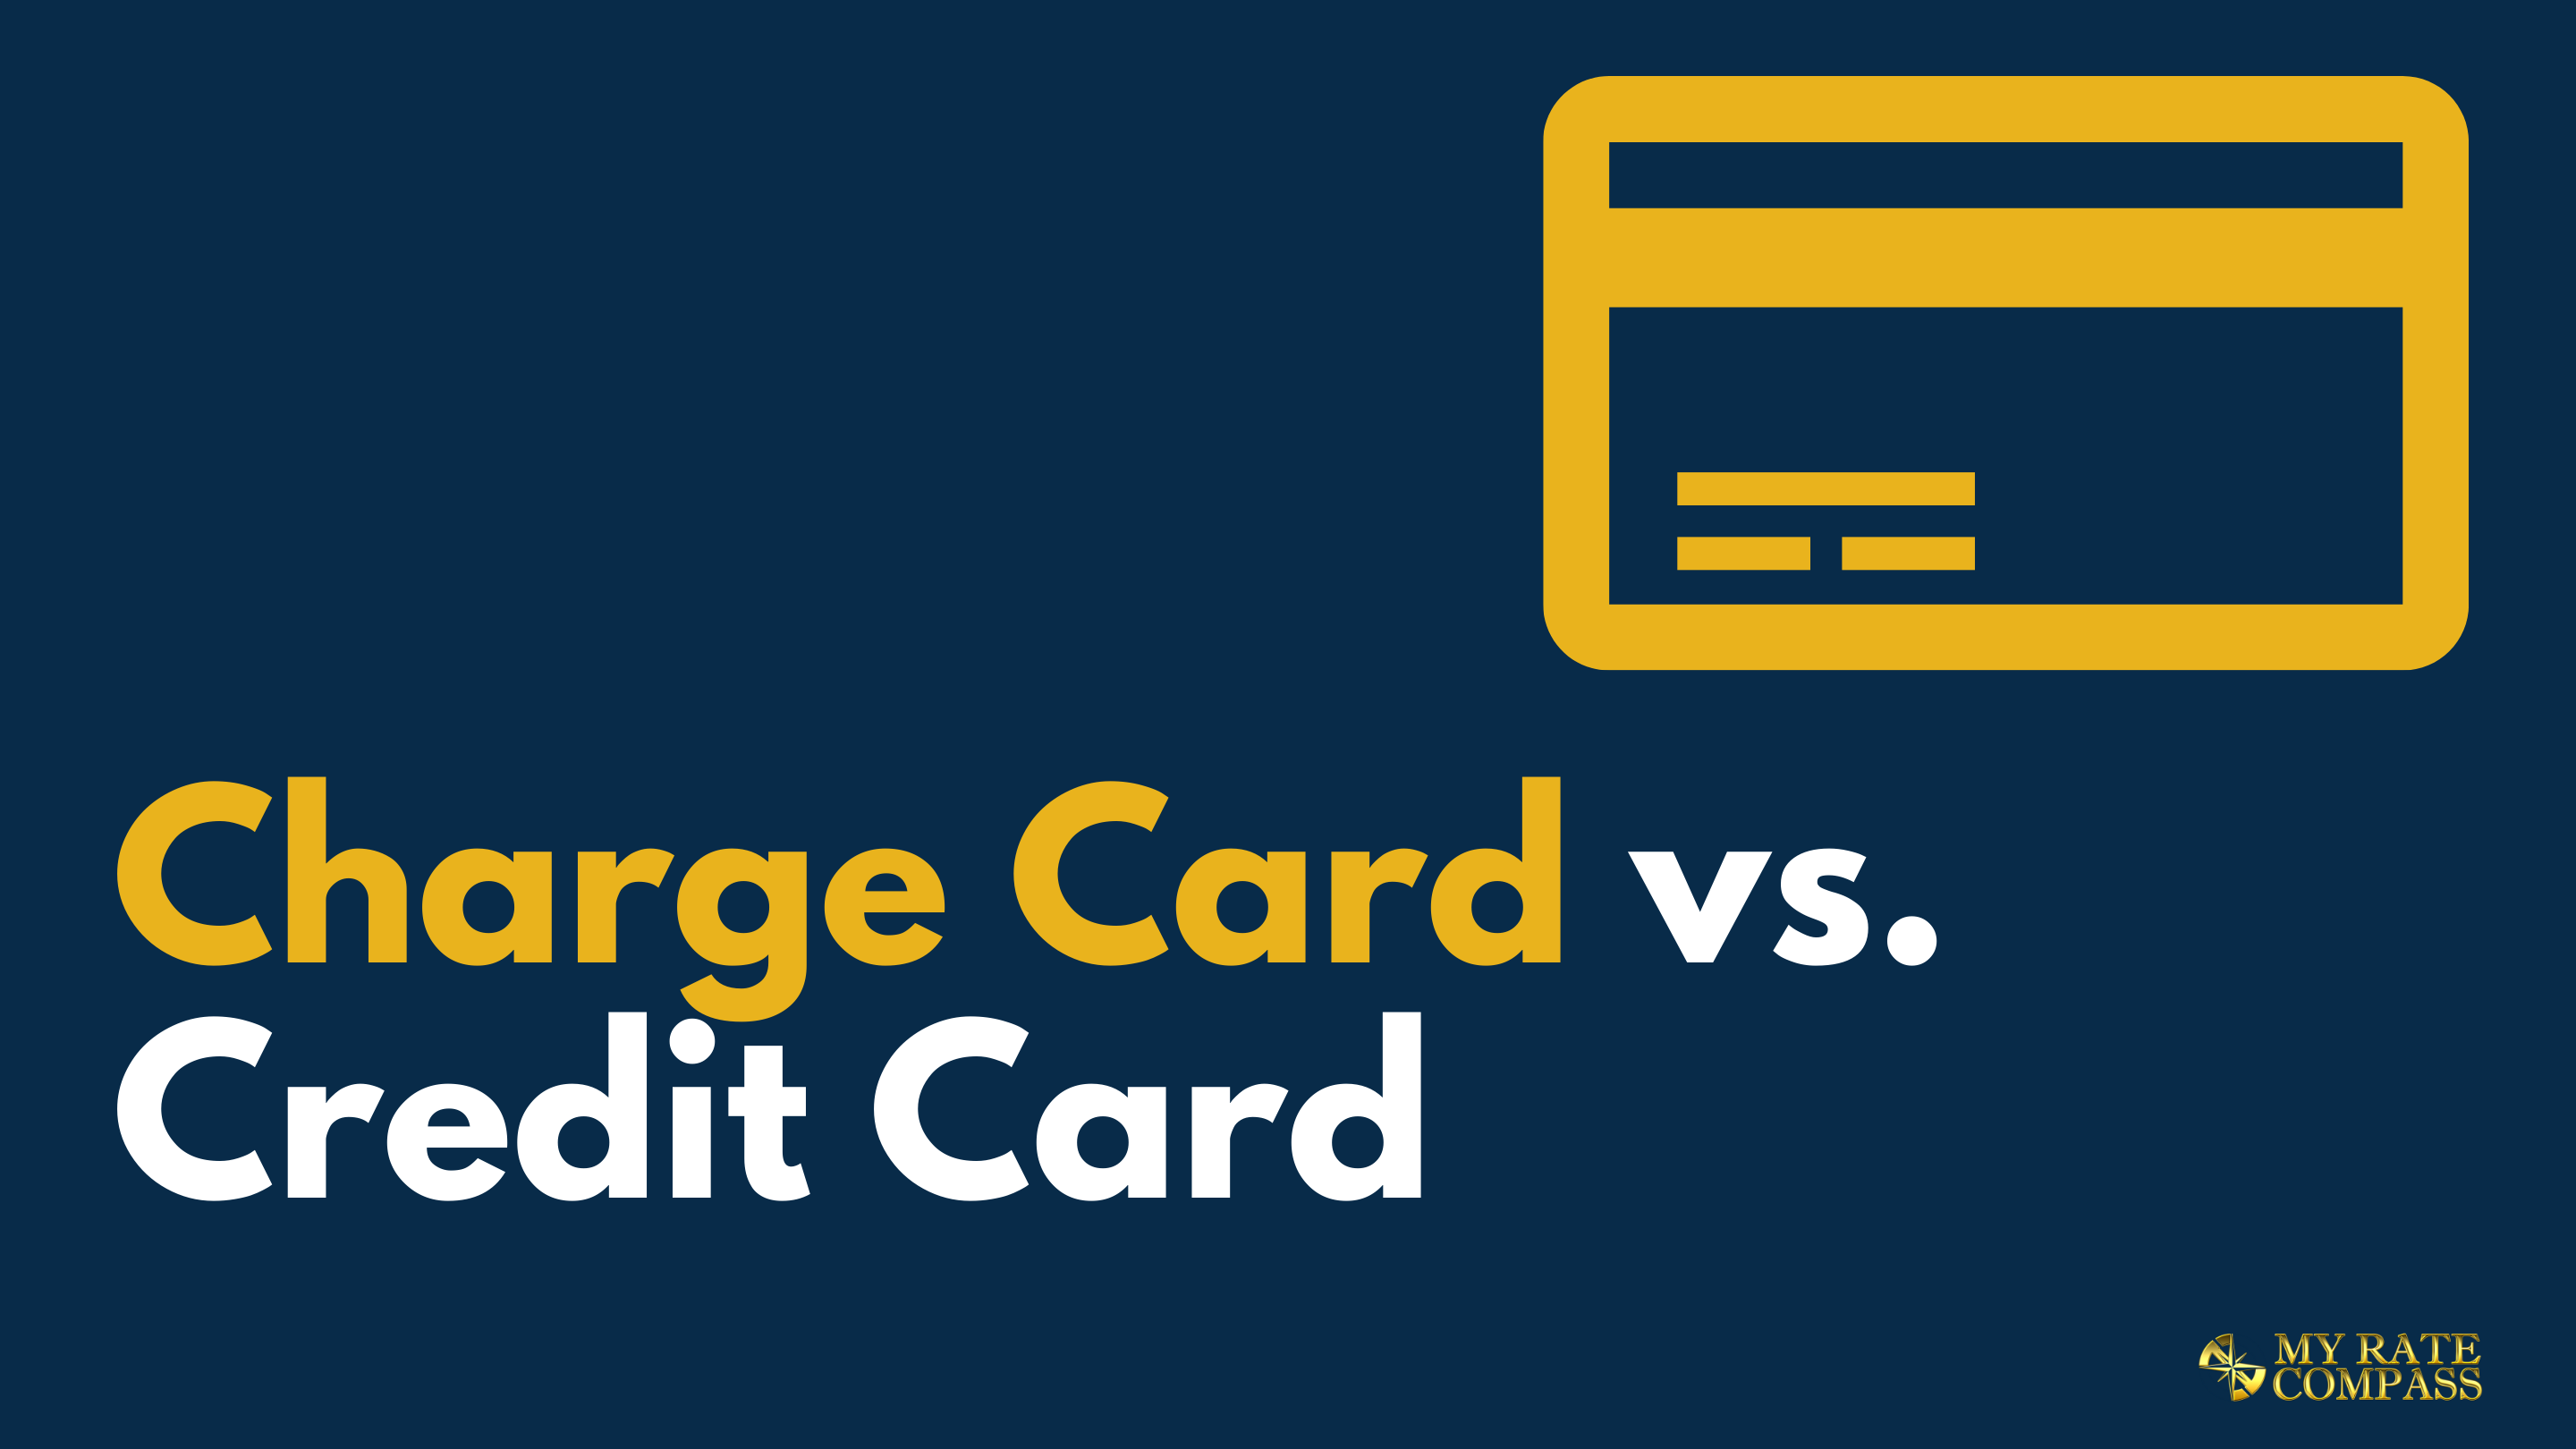 Charge Card vs. Credit Card